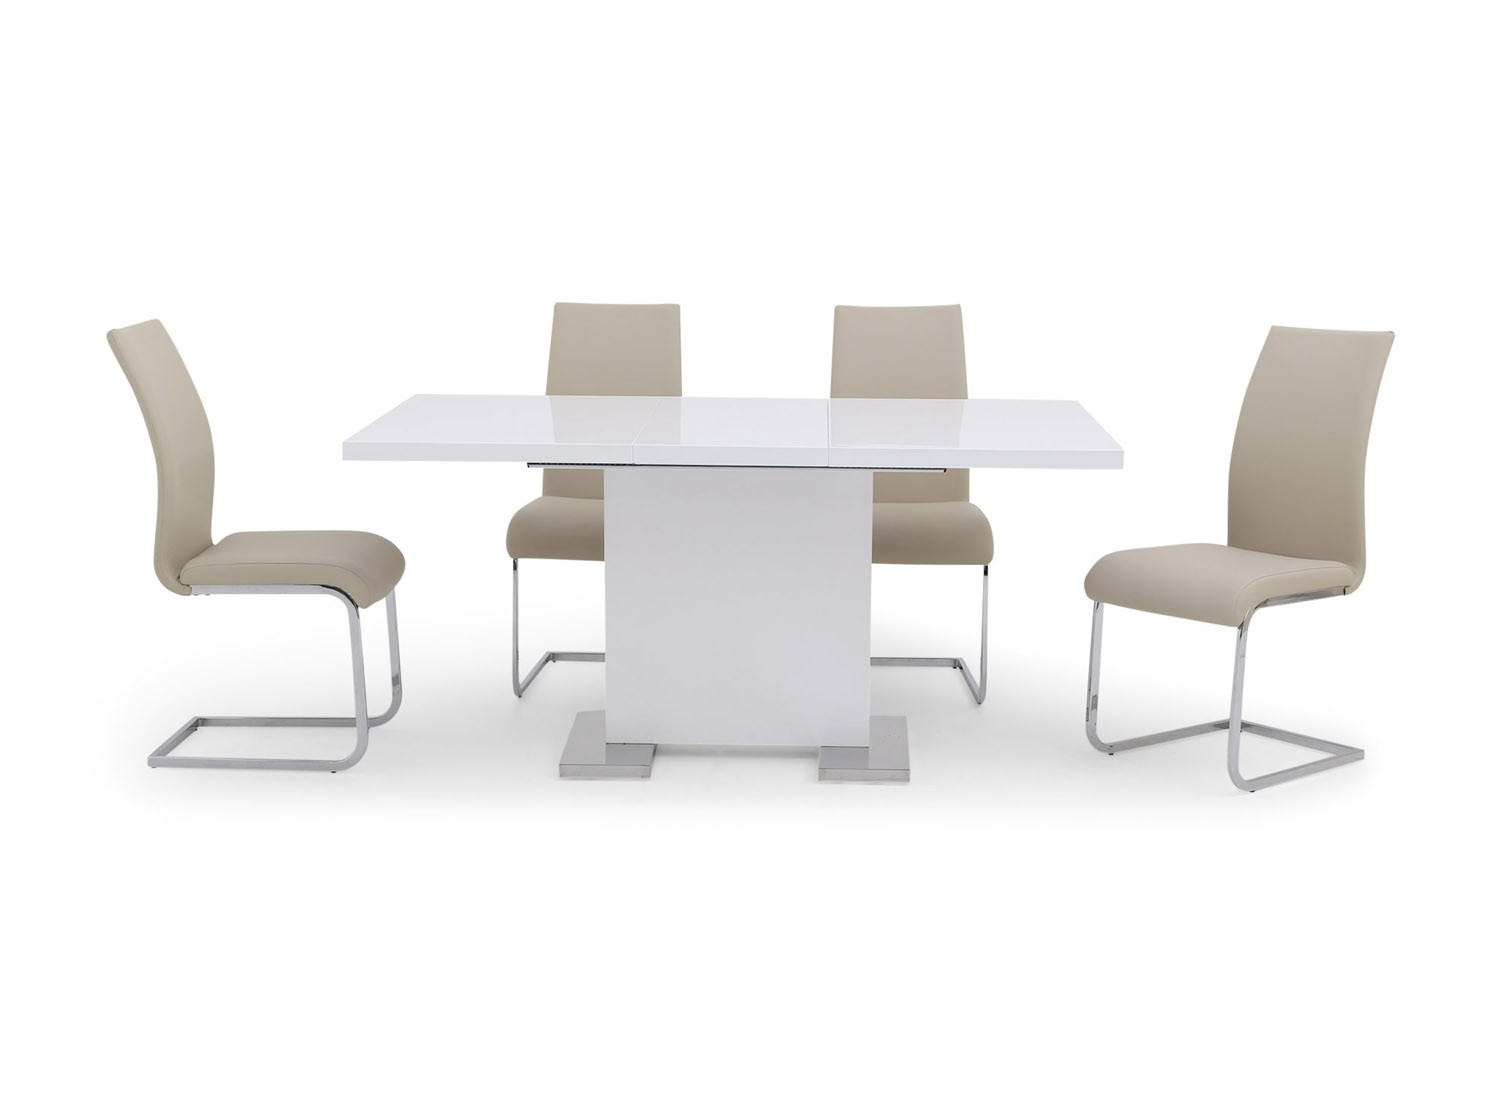 https://www.firstfurniture.co.uk/pub/media/catalog/product/f/a/fairmont_leone_ext_white_high_gloss_dining_table_4_paolo_black_chairs.jpg